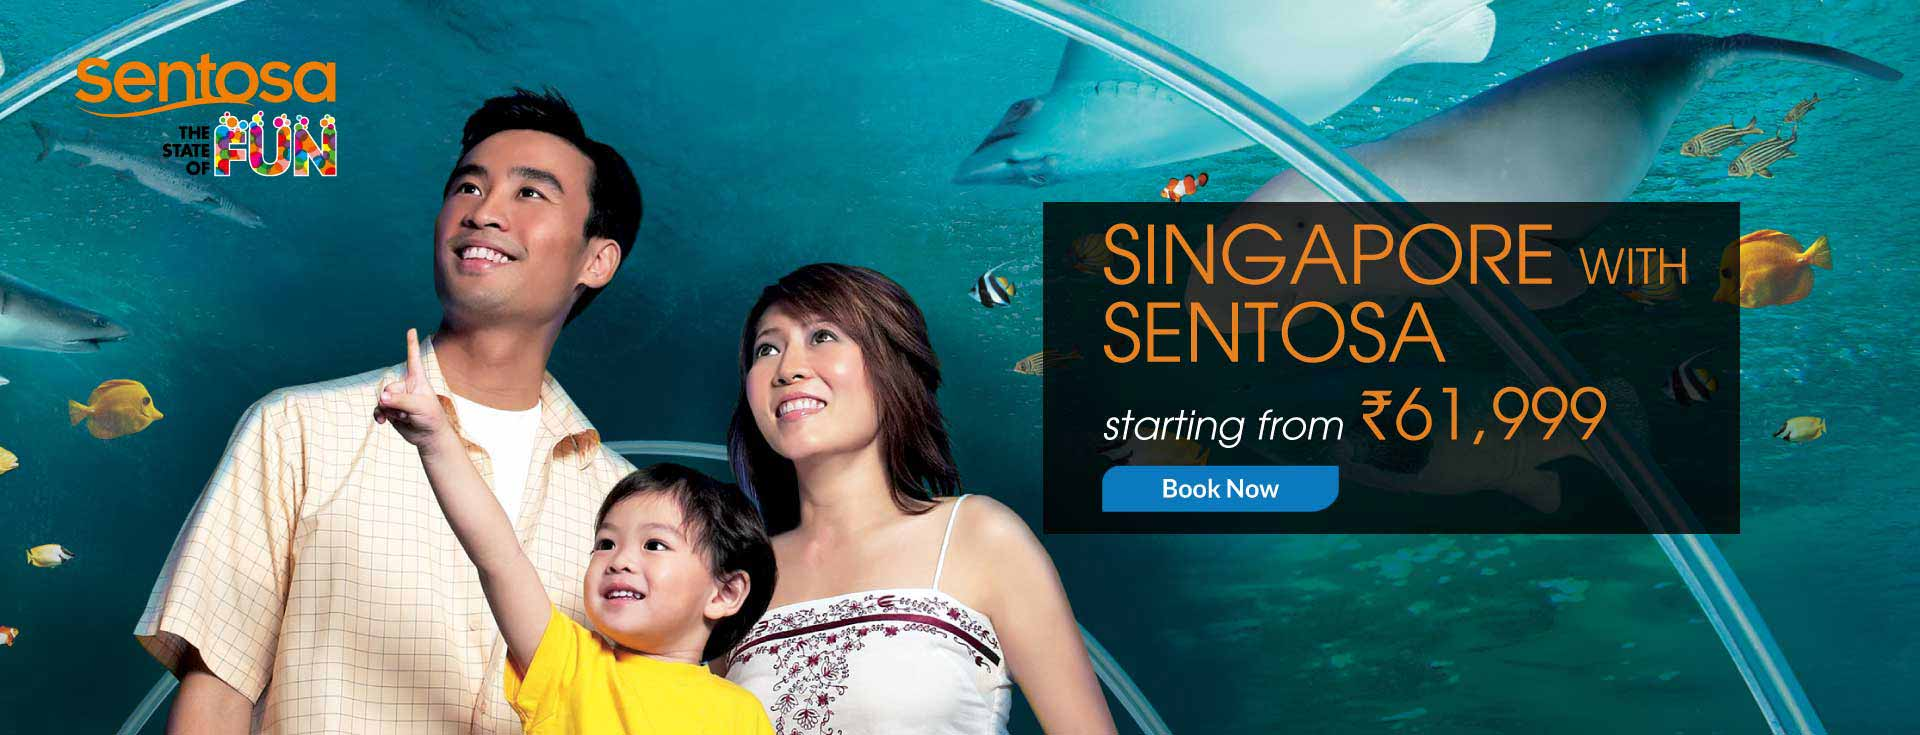 Singapore with Sentosa Package